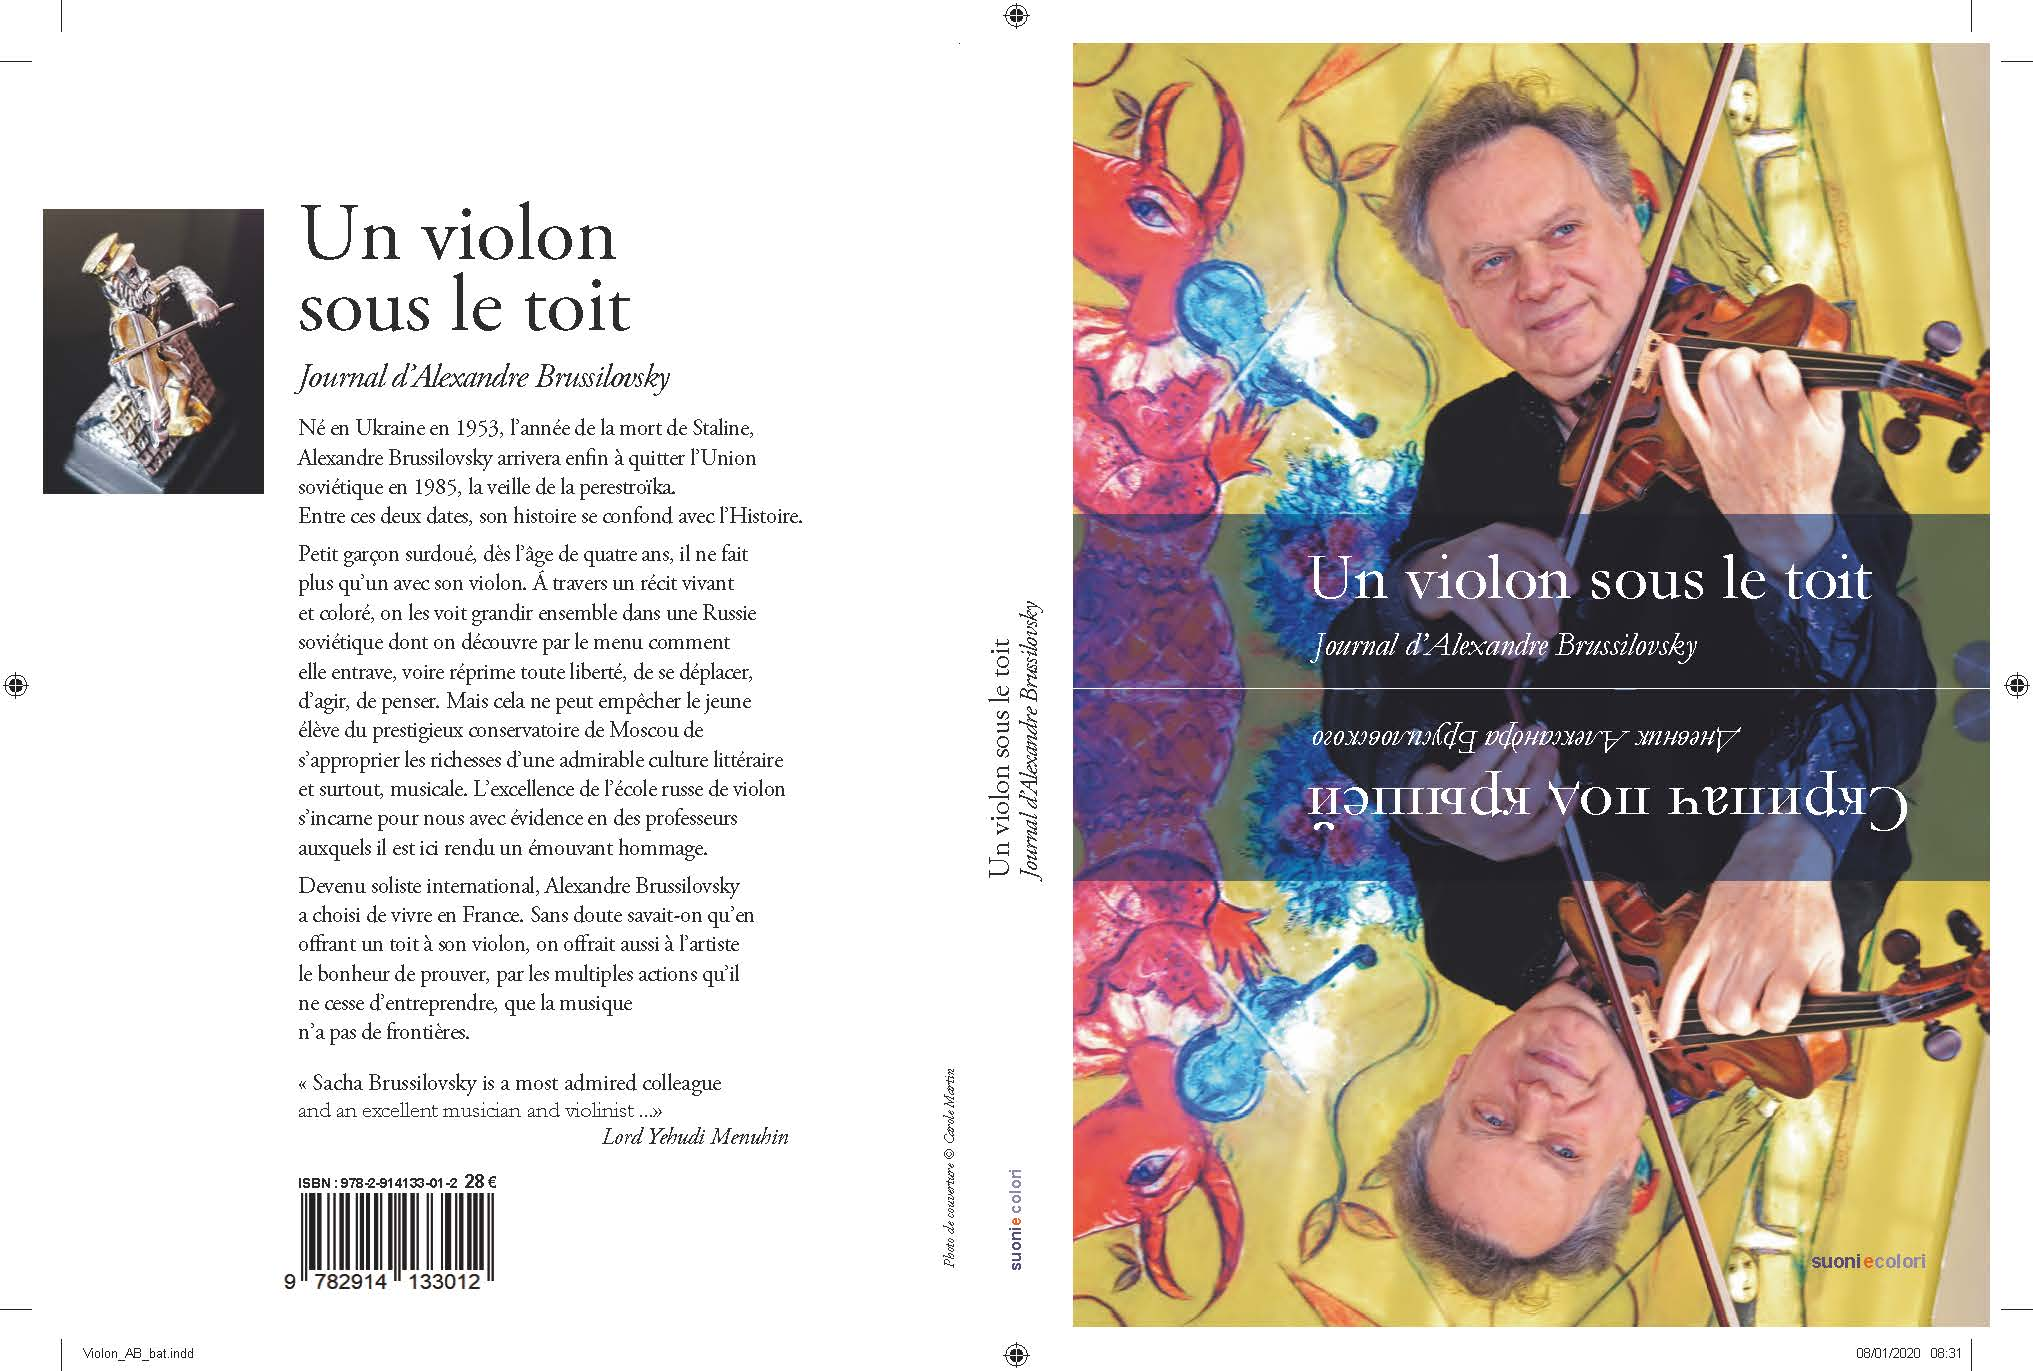 Book of Un violon sous le Toit French version